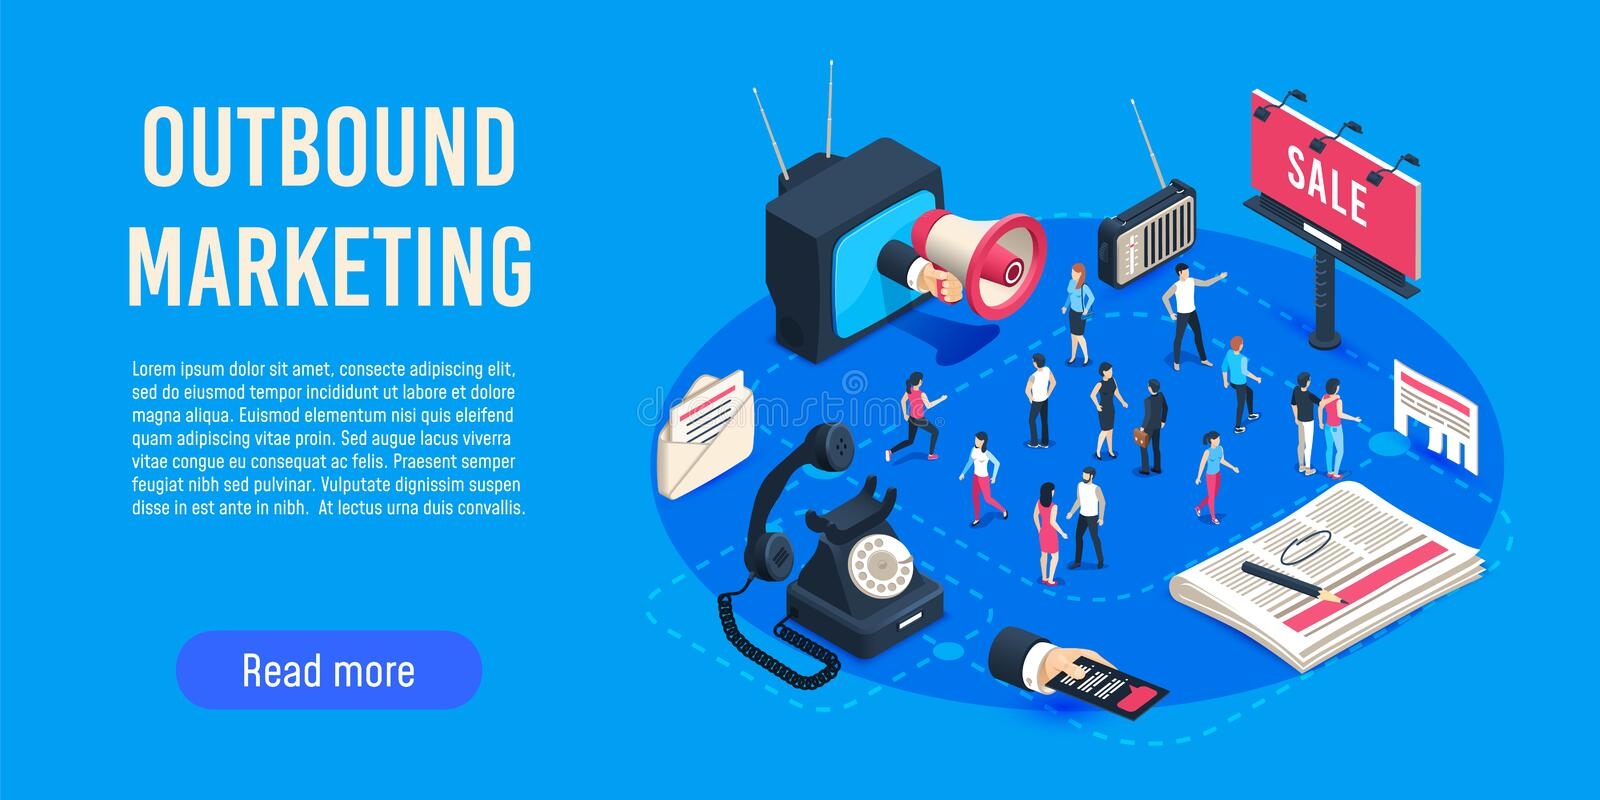 Outbound marketing isometric. Business market sales optimisation, corporate crm and social media ads communication vector illustration